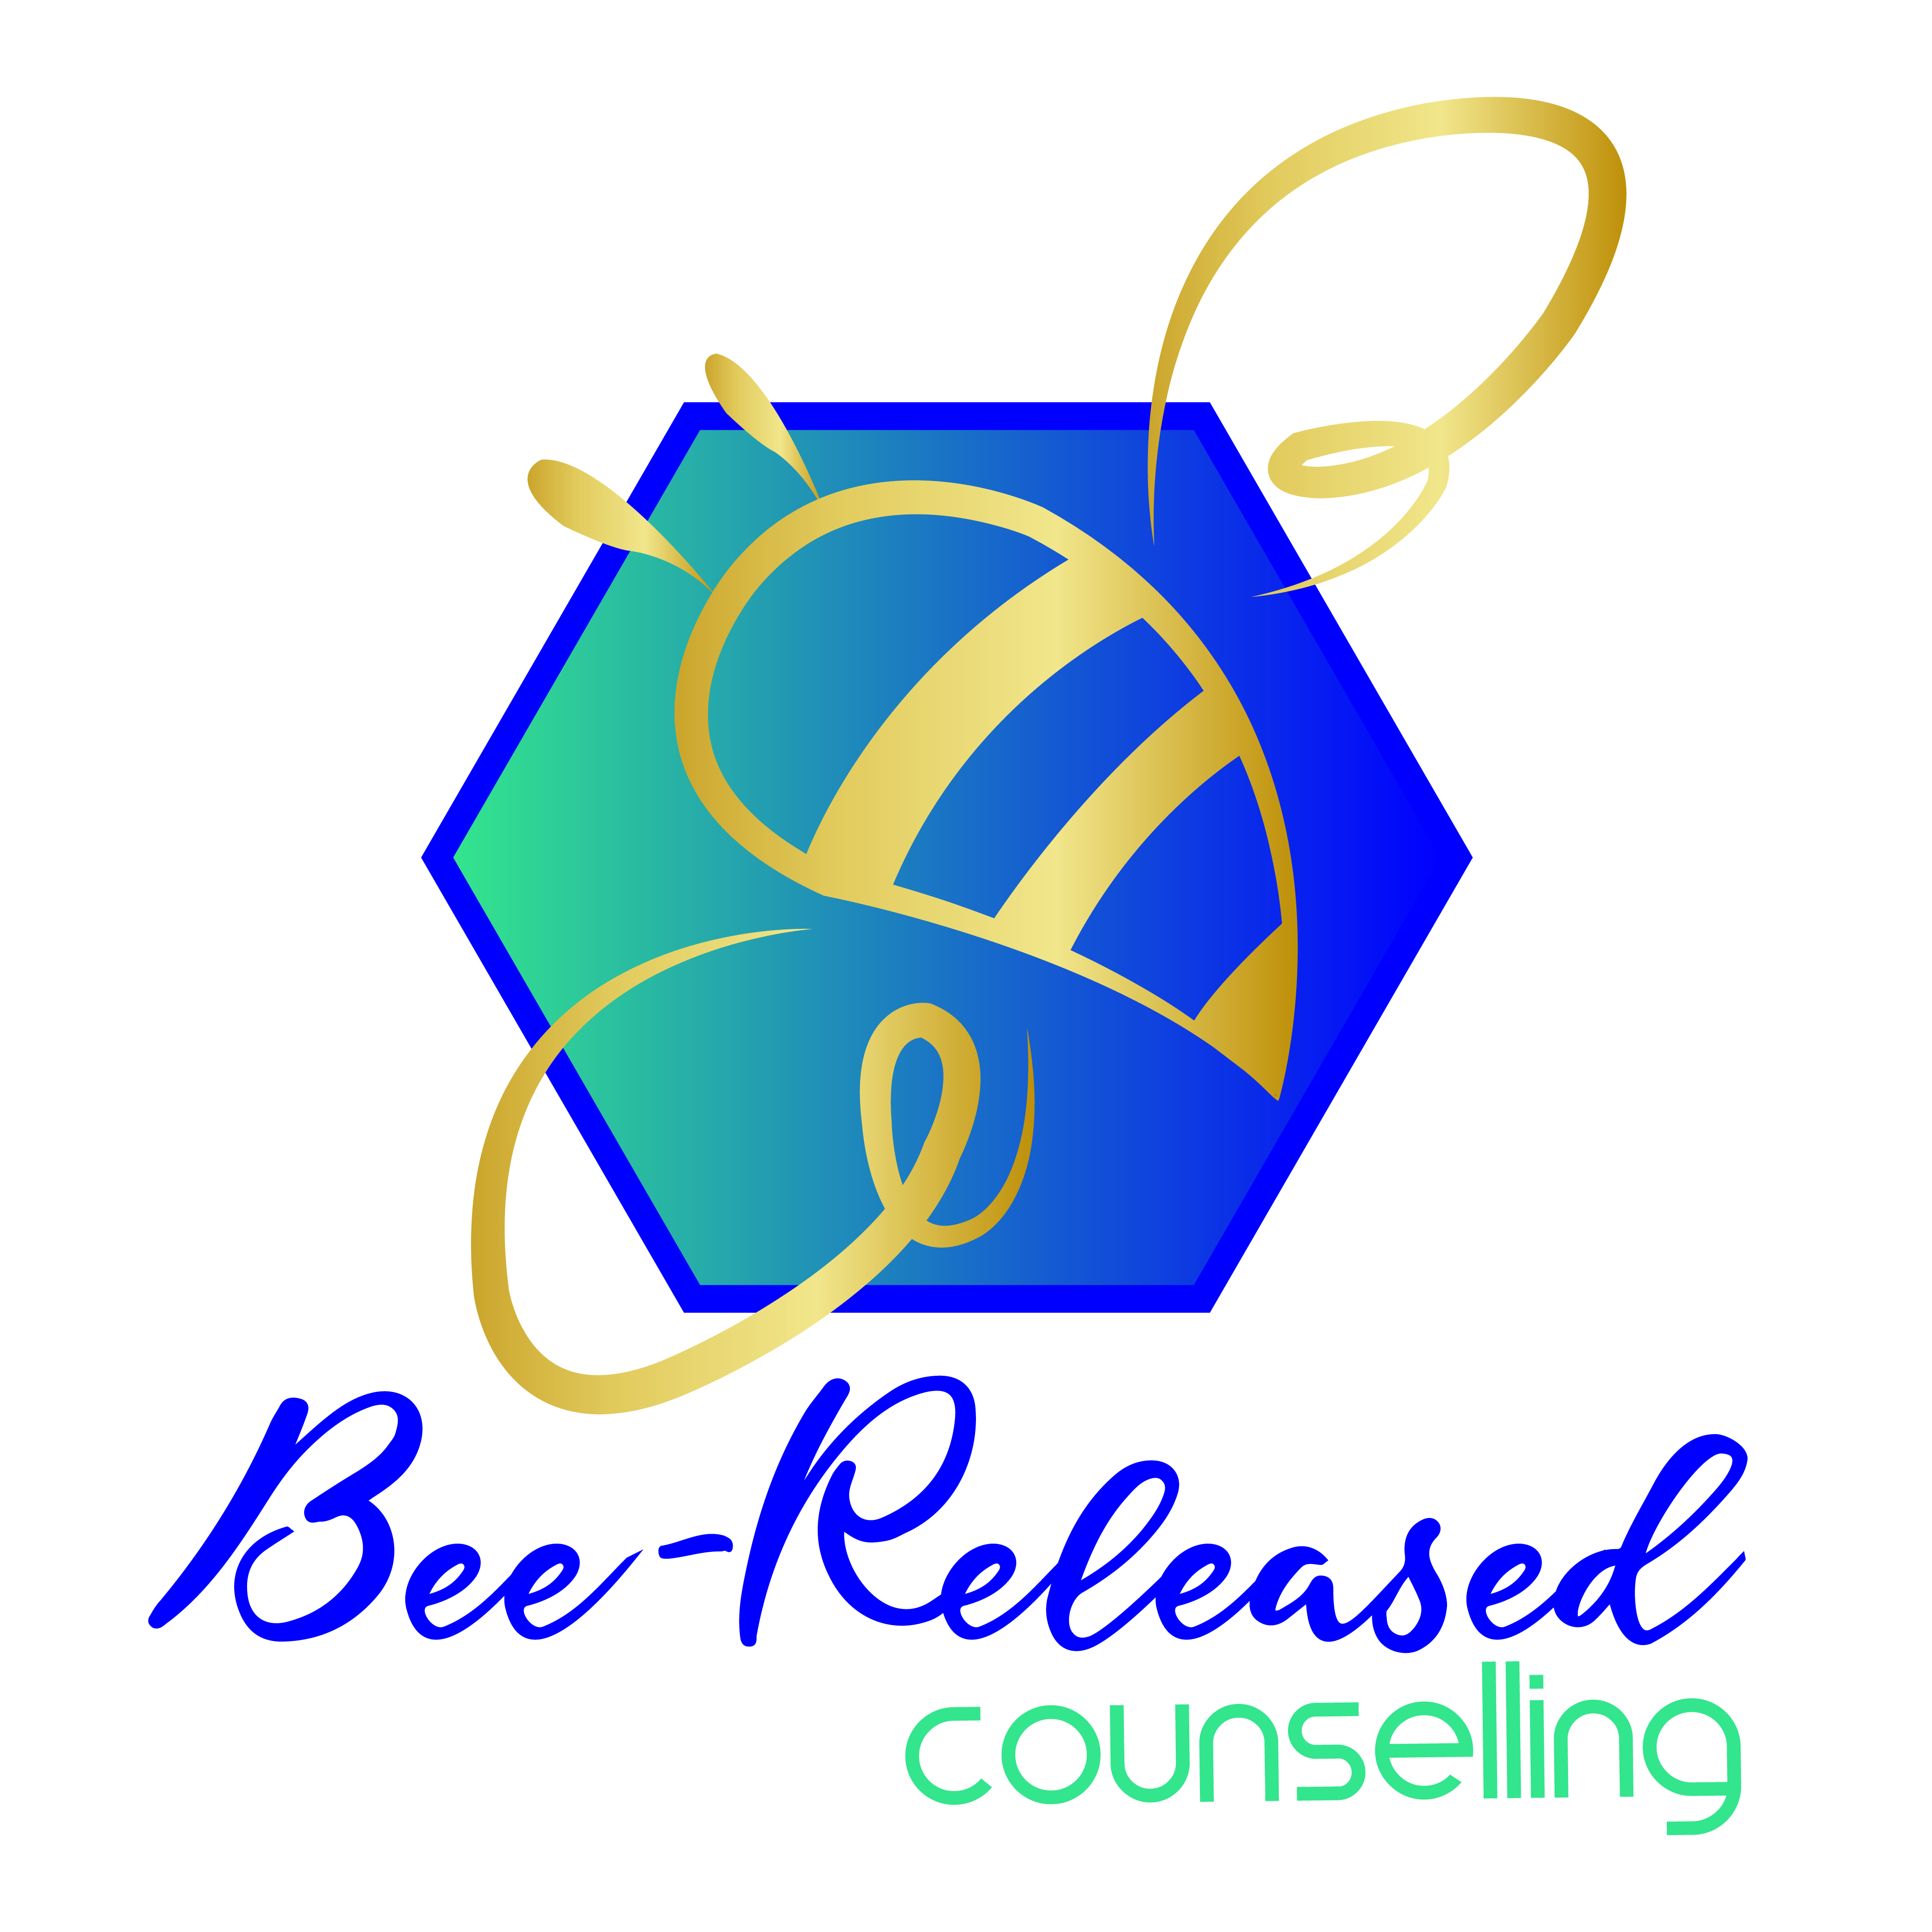 Bee-released Counselling for Carers CIC